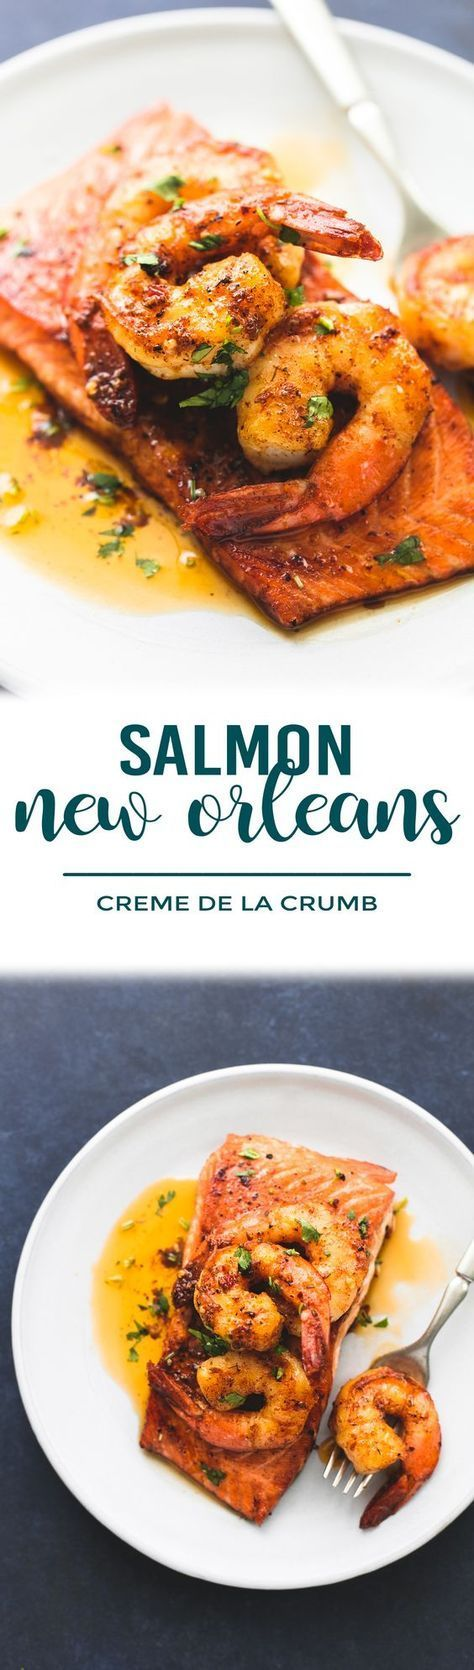 Sweet and savory pan-seared salmon topped with sautéed shrimp in cajun butter sauce. Salmon New Orleans is an unforgettable 30 minute meal your family will crave!   lecremedelacrumb.com #quick #30minute #easy #healthy #salmon #seafood #dinner #shrimp